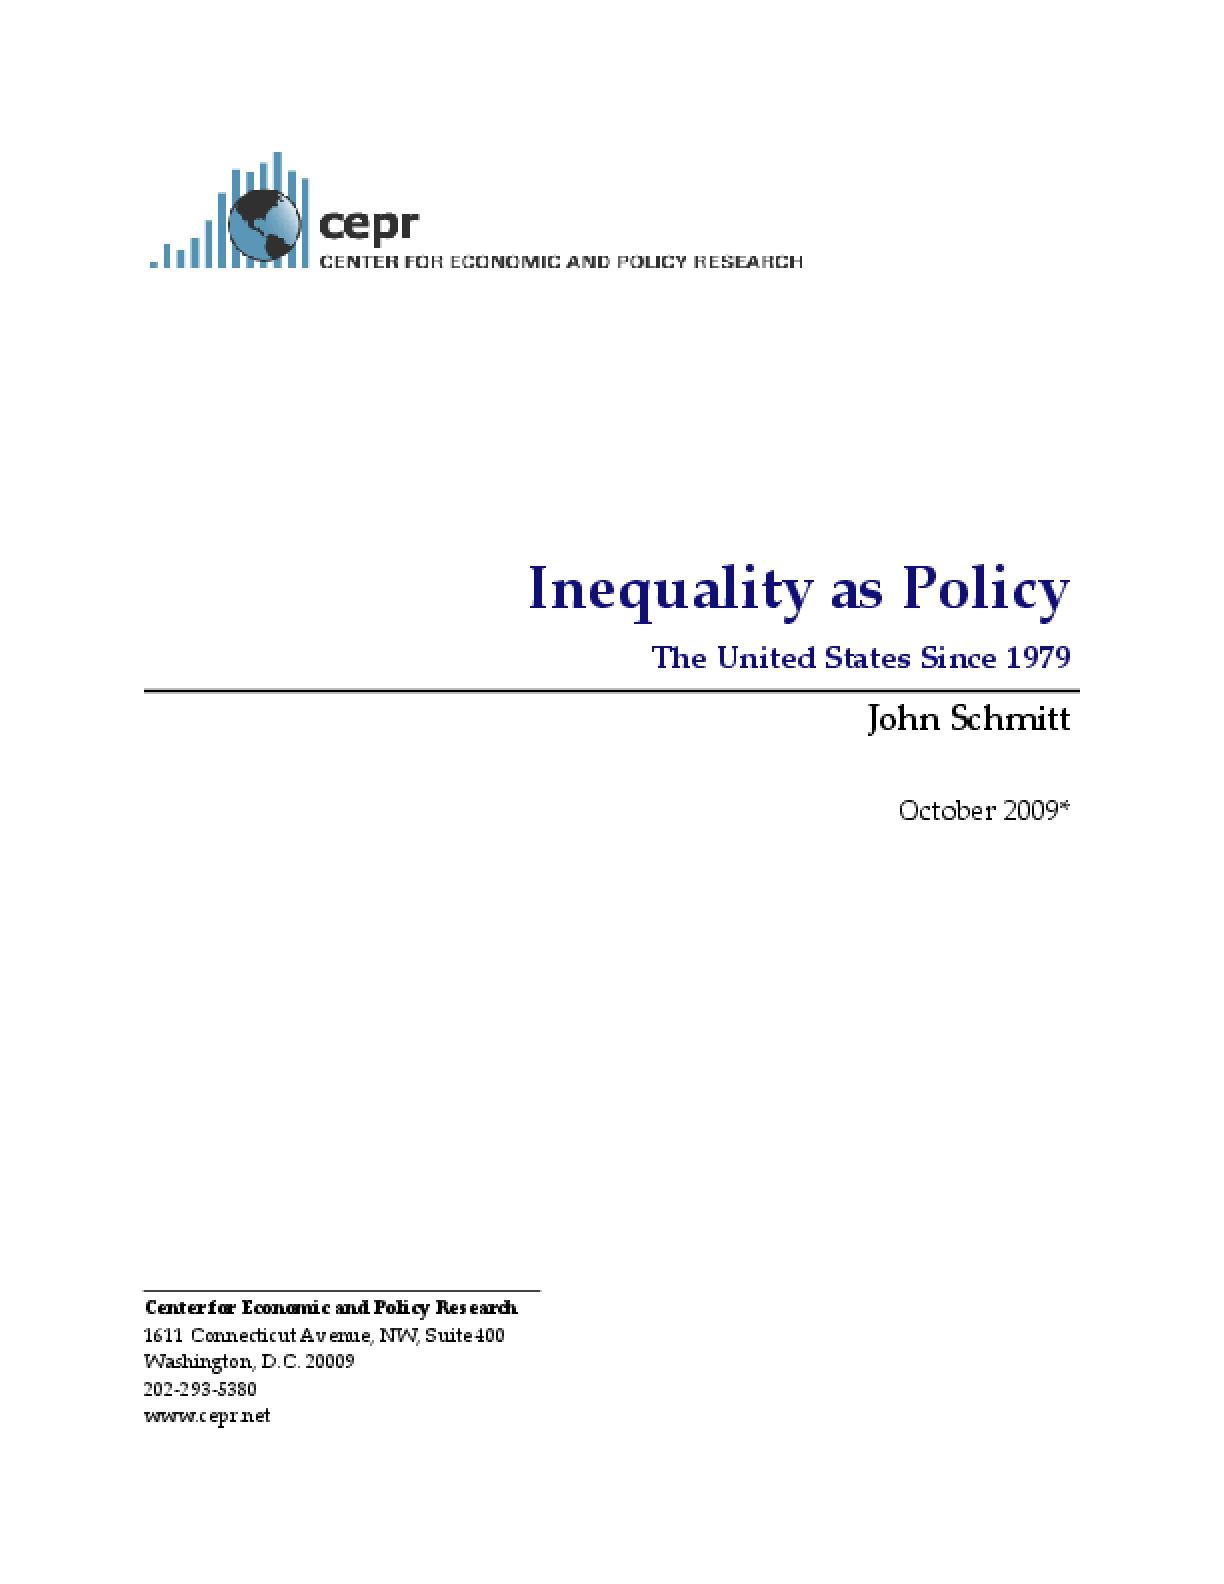 Inequality as Policy: The United States Since 1979